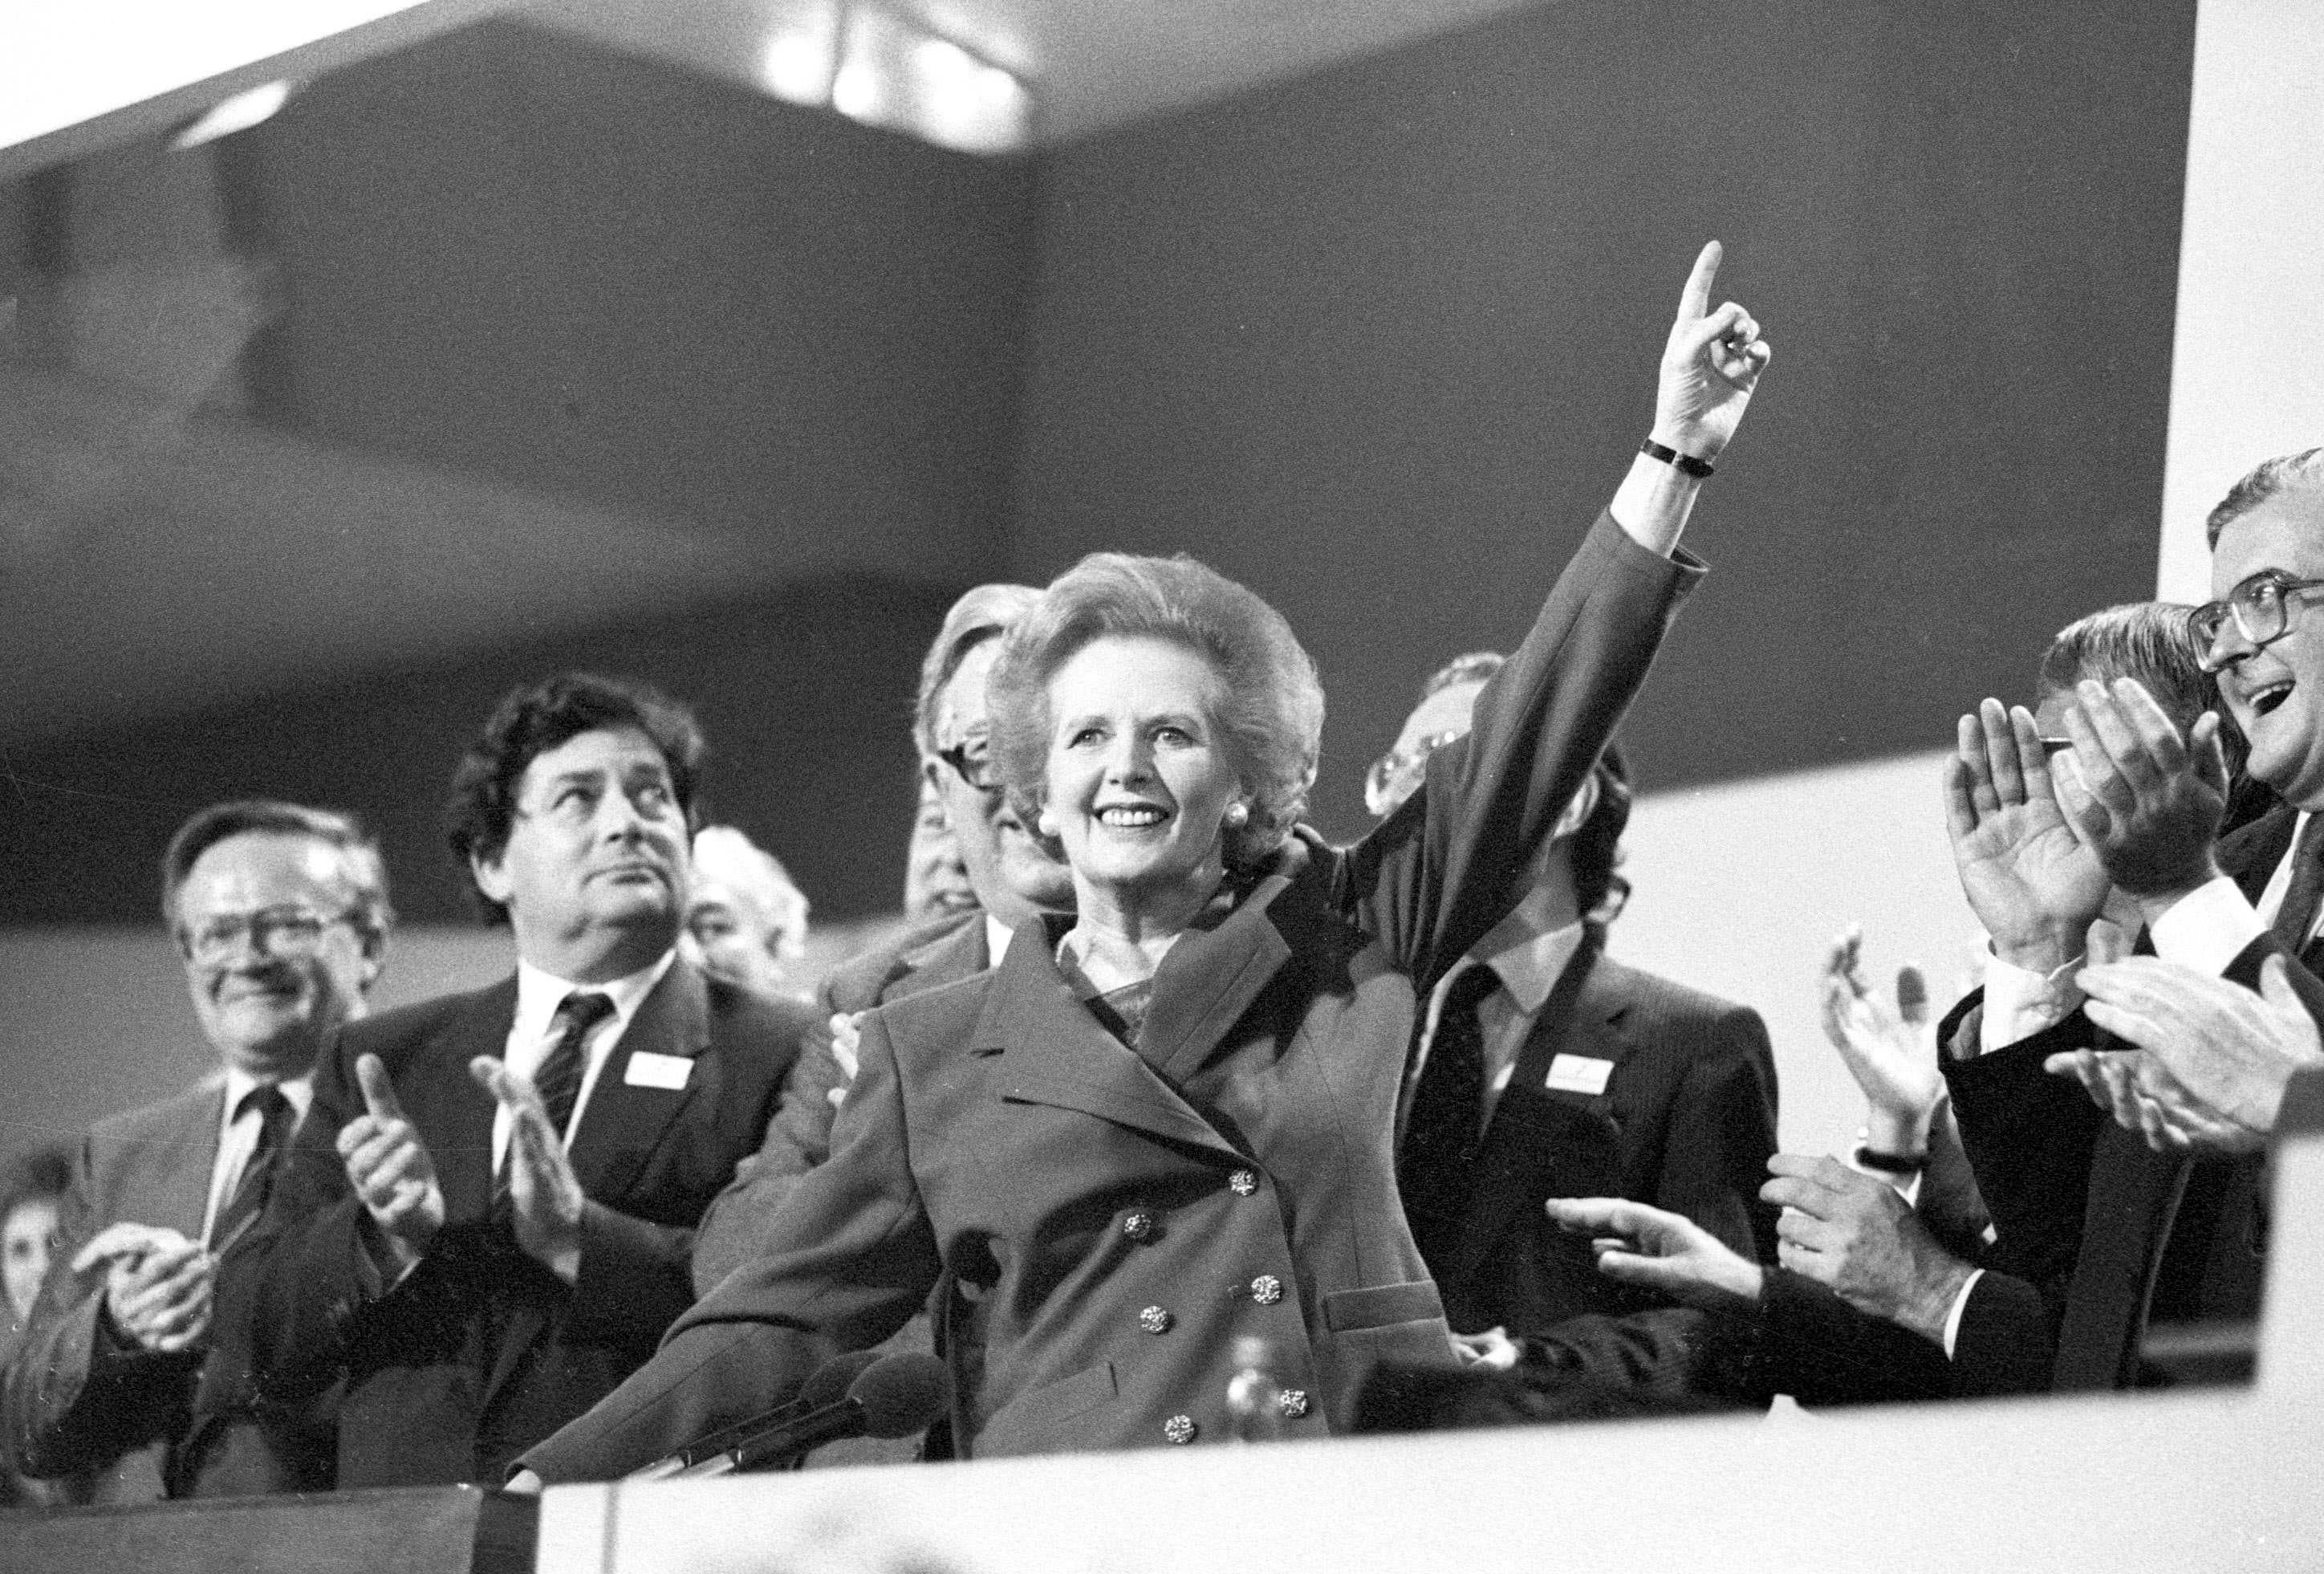 Then British Prime Minister Margaret Thatcher points skyward as she receives standing ovation at Conservative Party Conference in this October 13, 1989 file photo. Thatcher has died following a stroke, a spokesman for the family said. (Reuters)